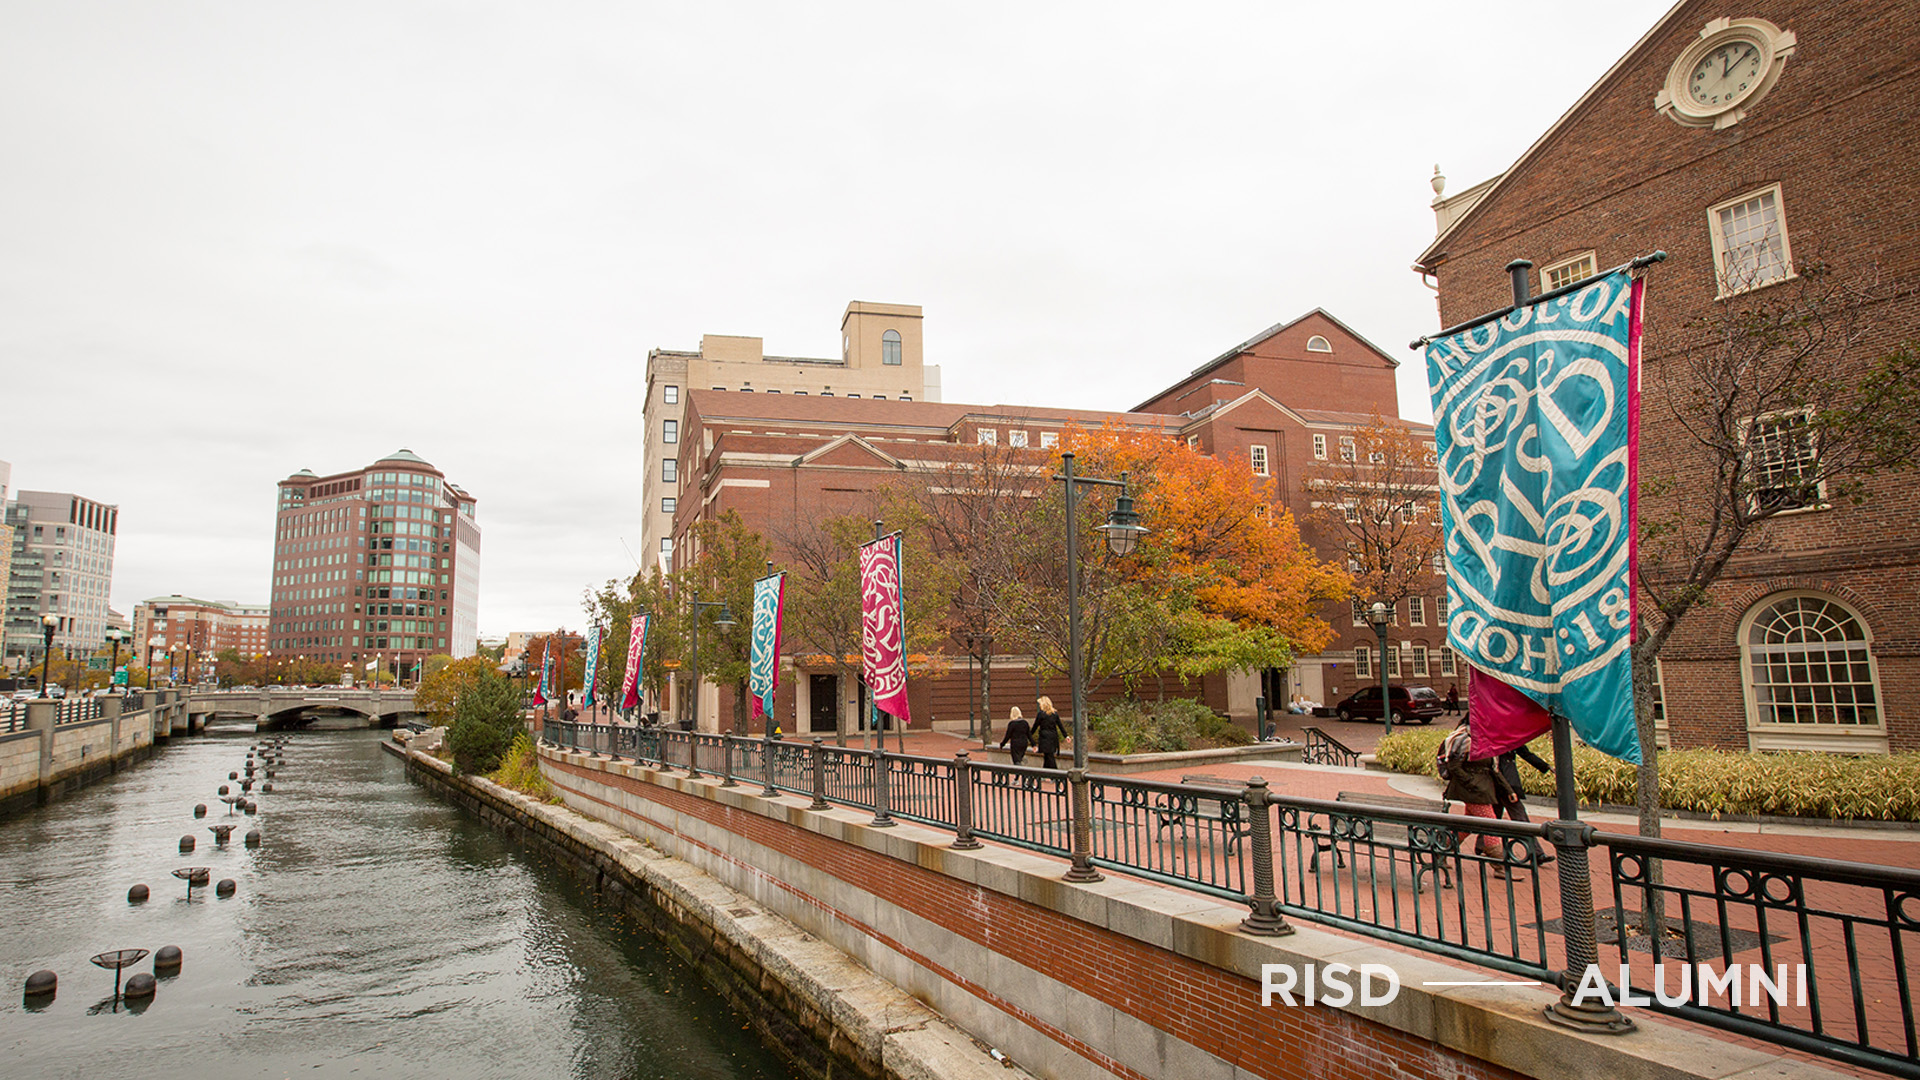 The Providence River and Canal Walk on a cloudy autumn day.